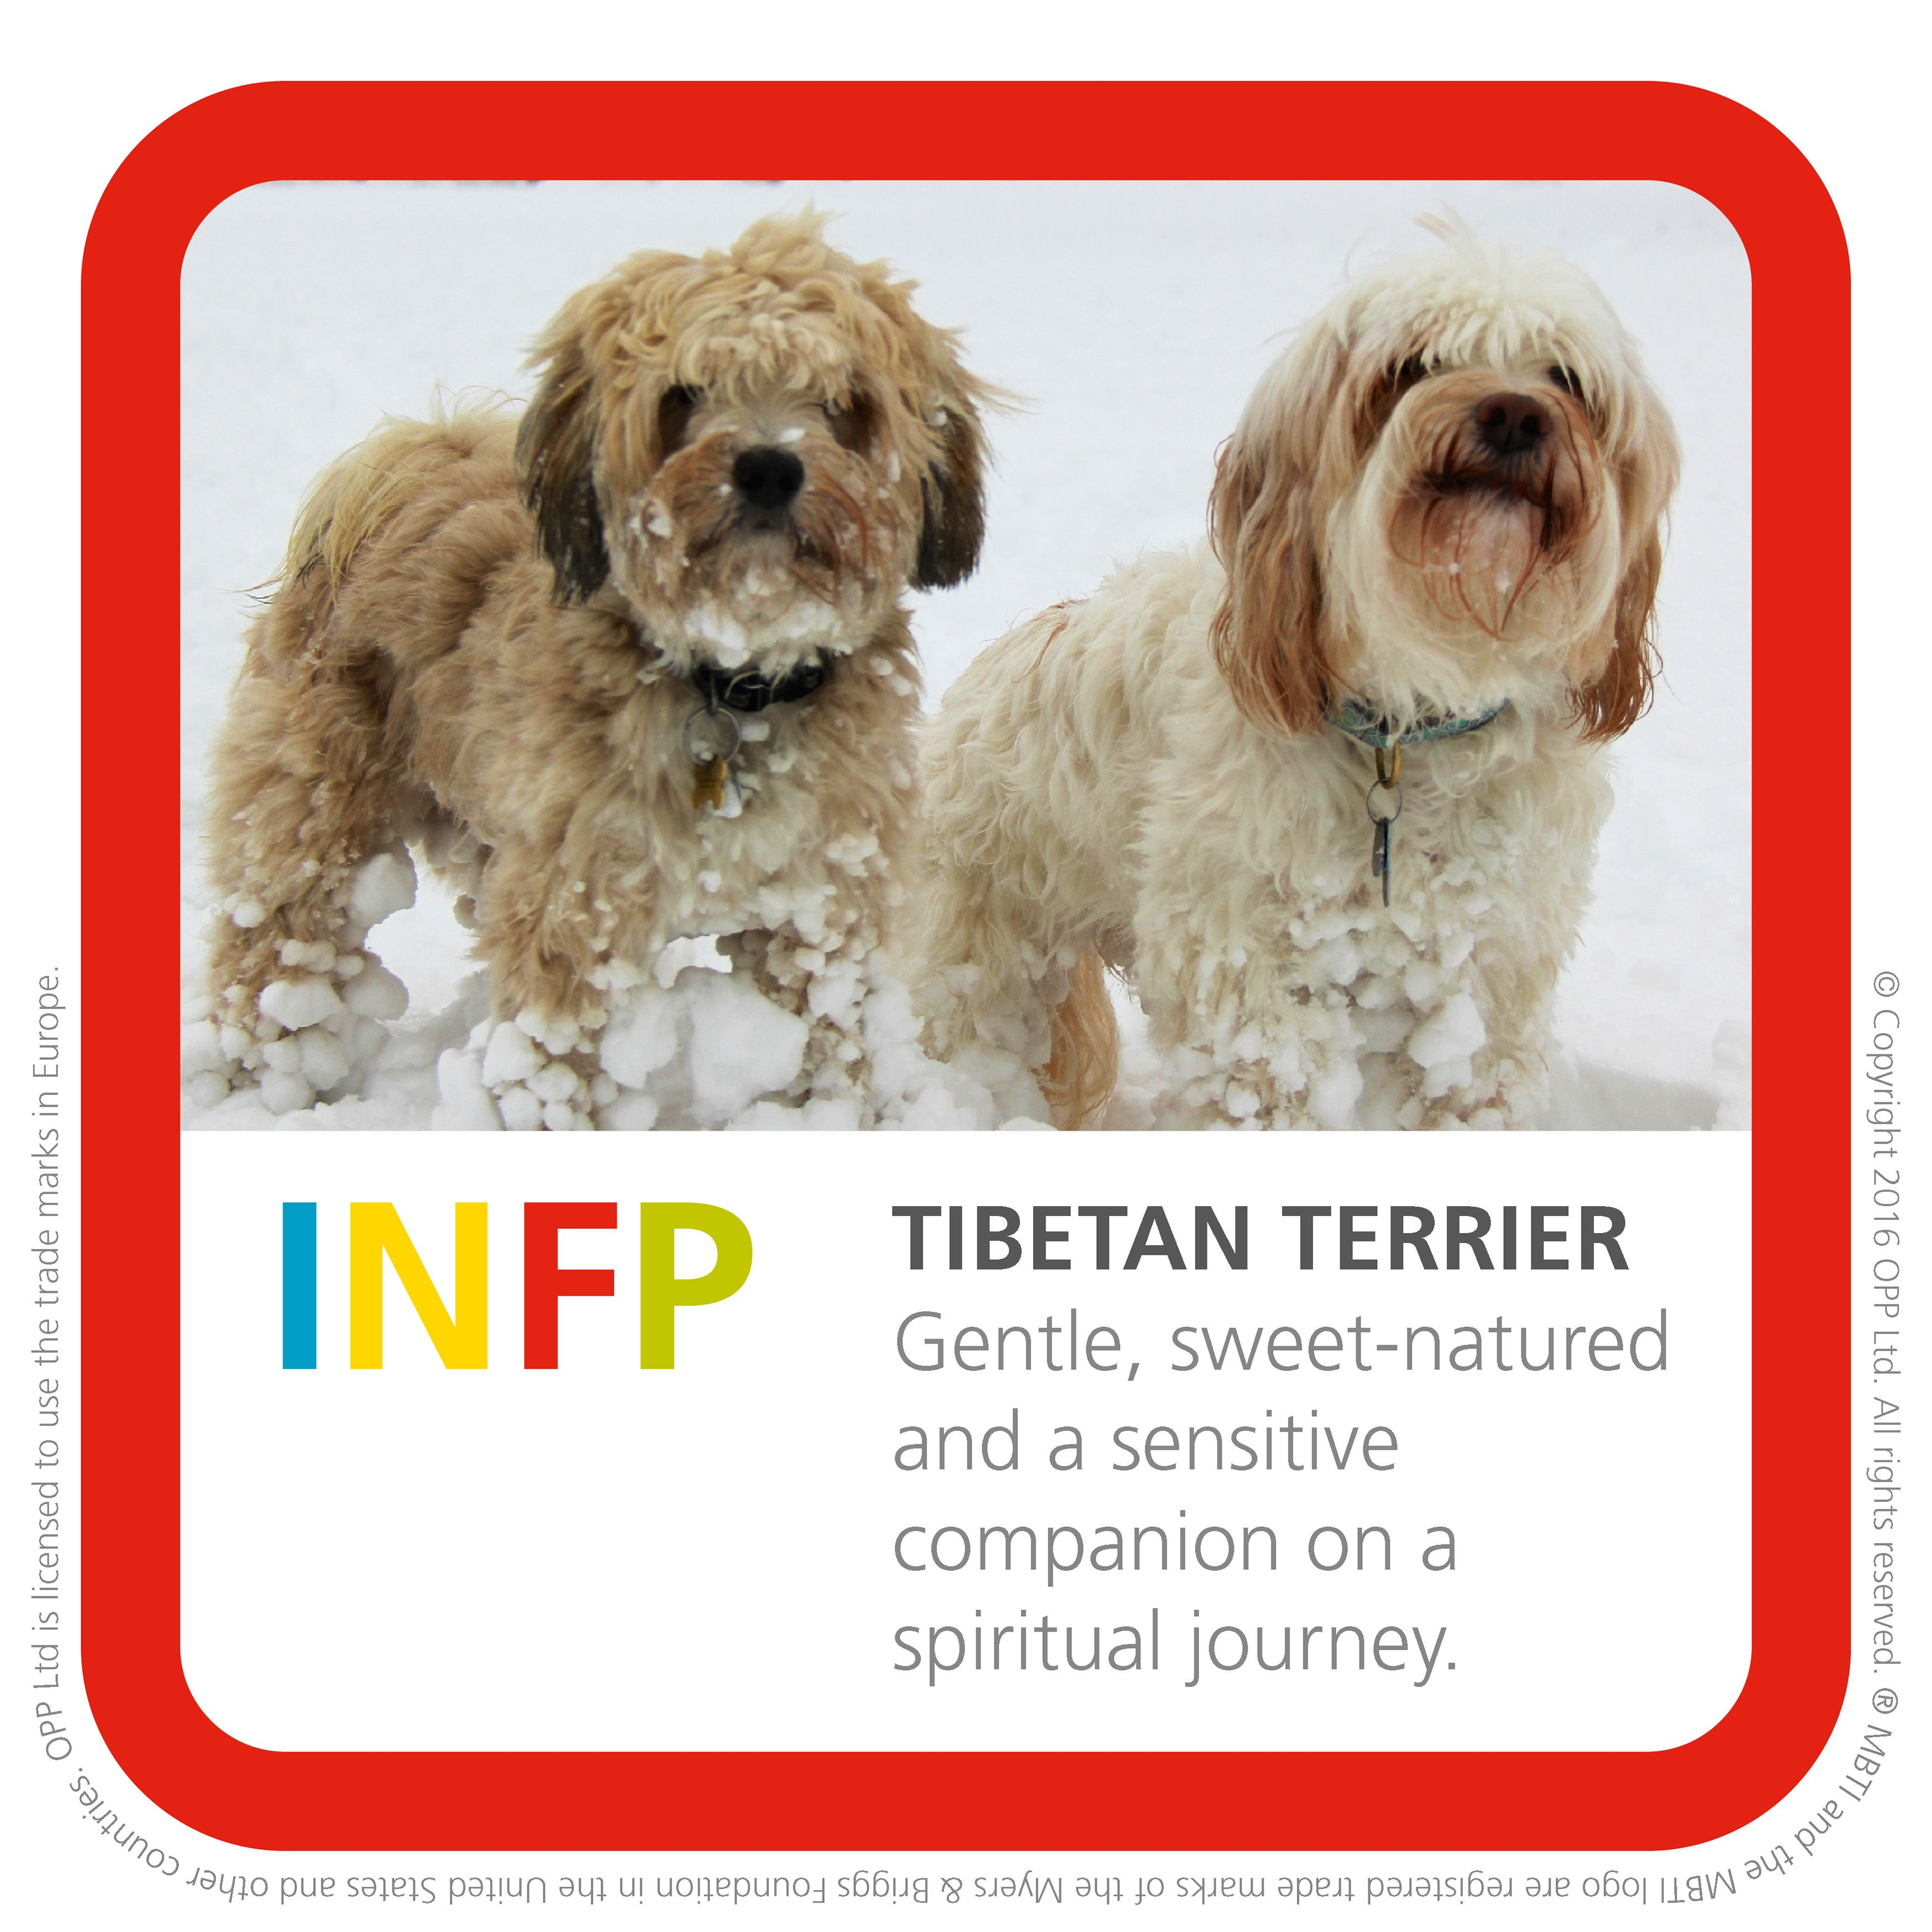 This is my Type image! Get yours at